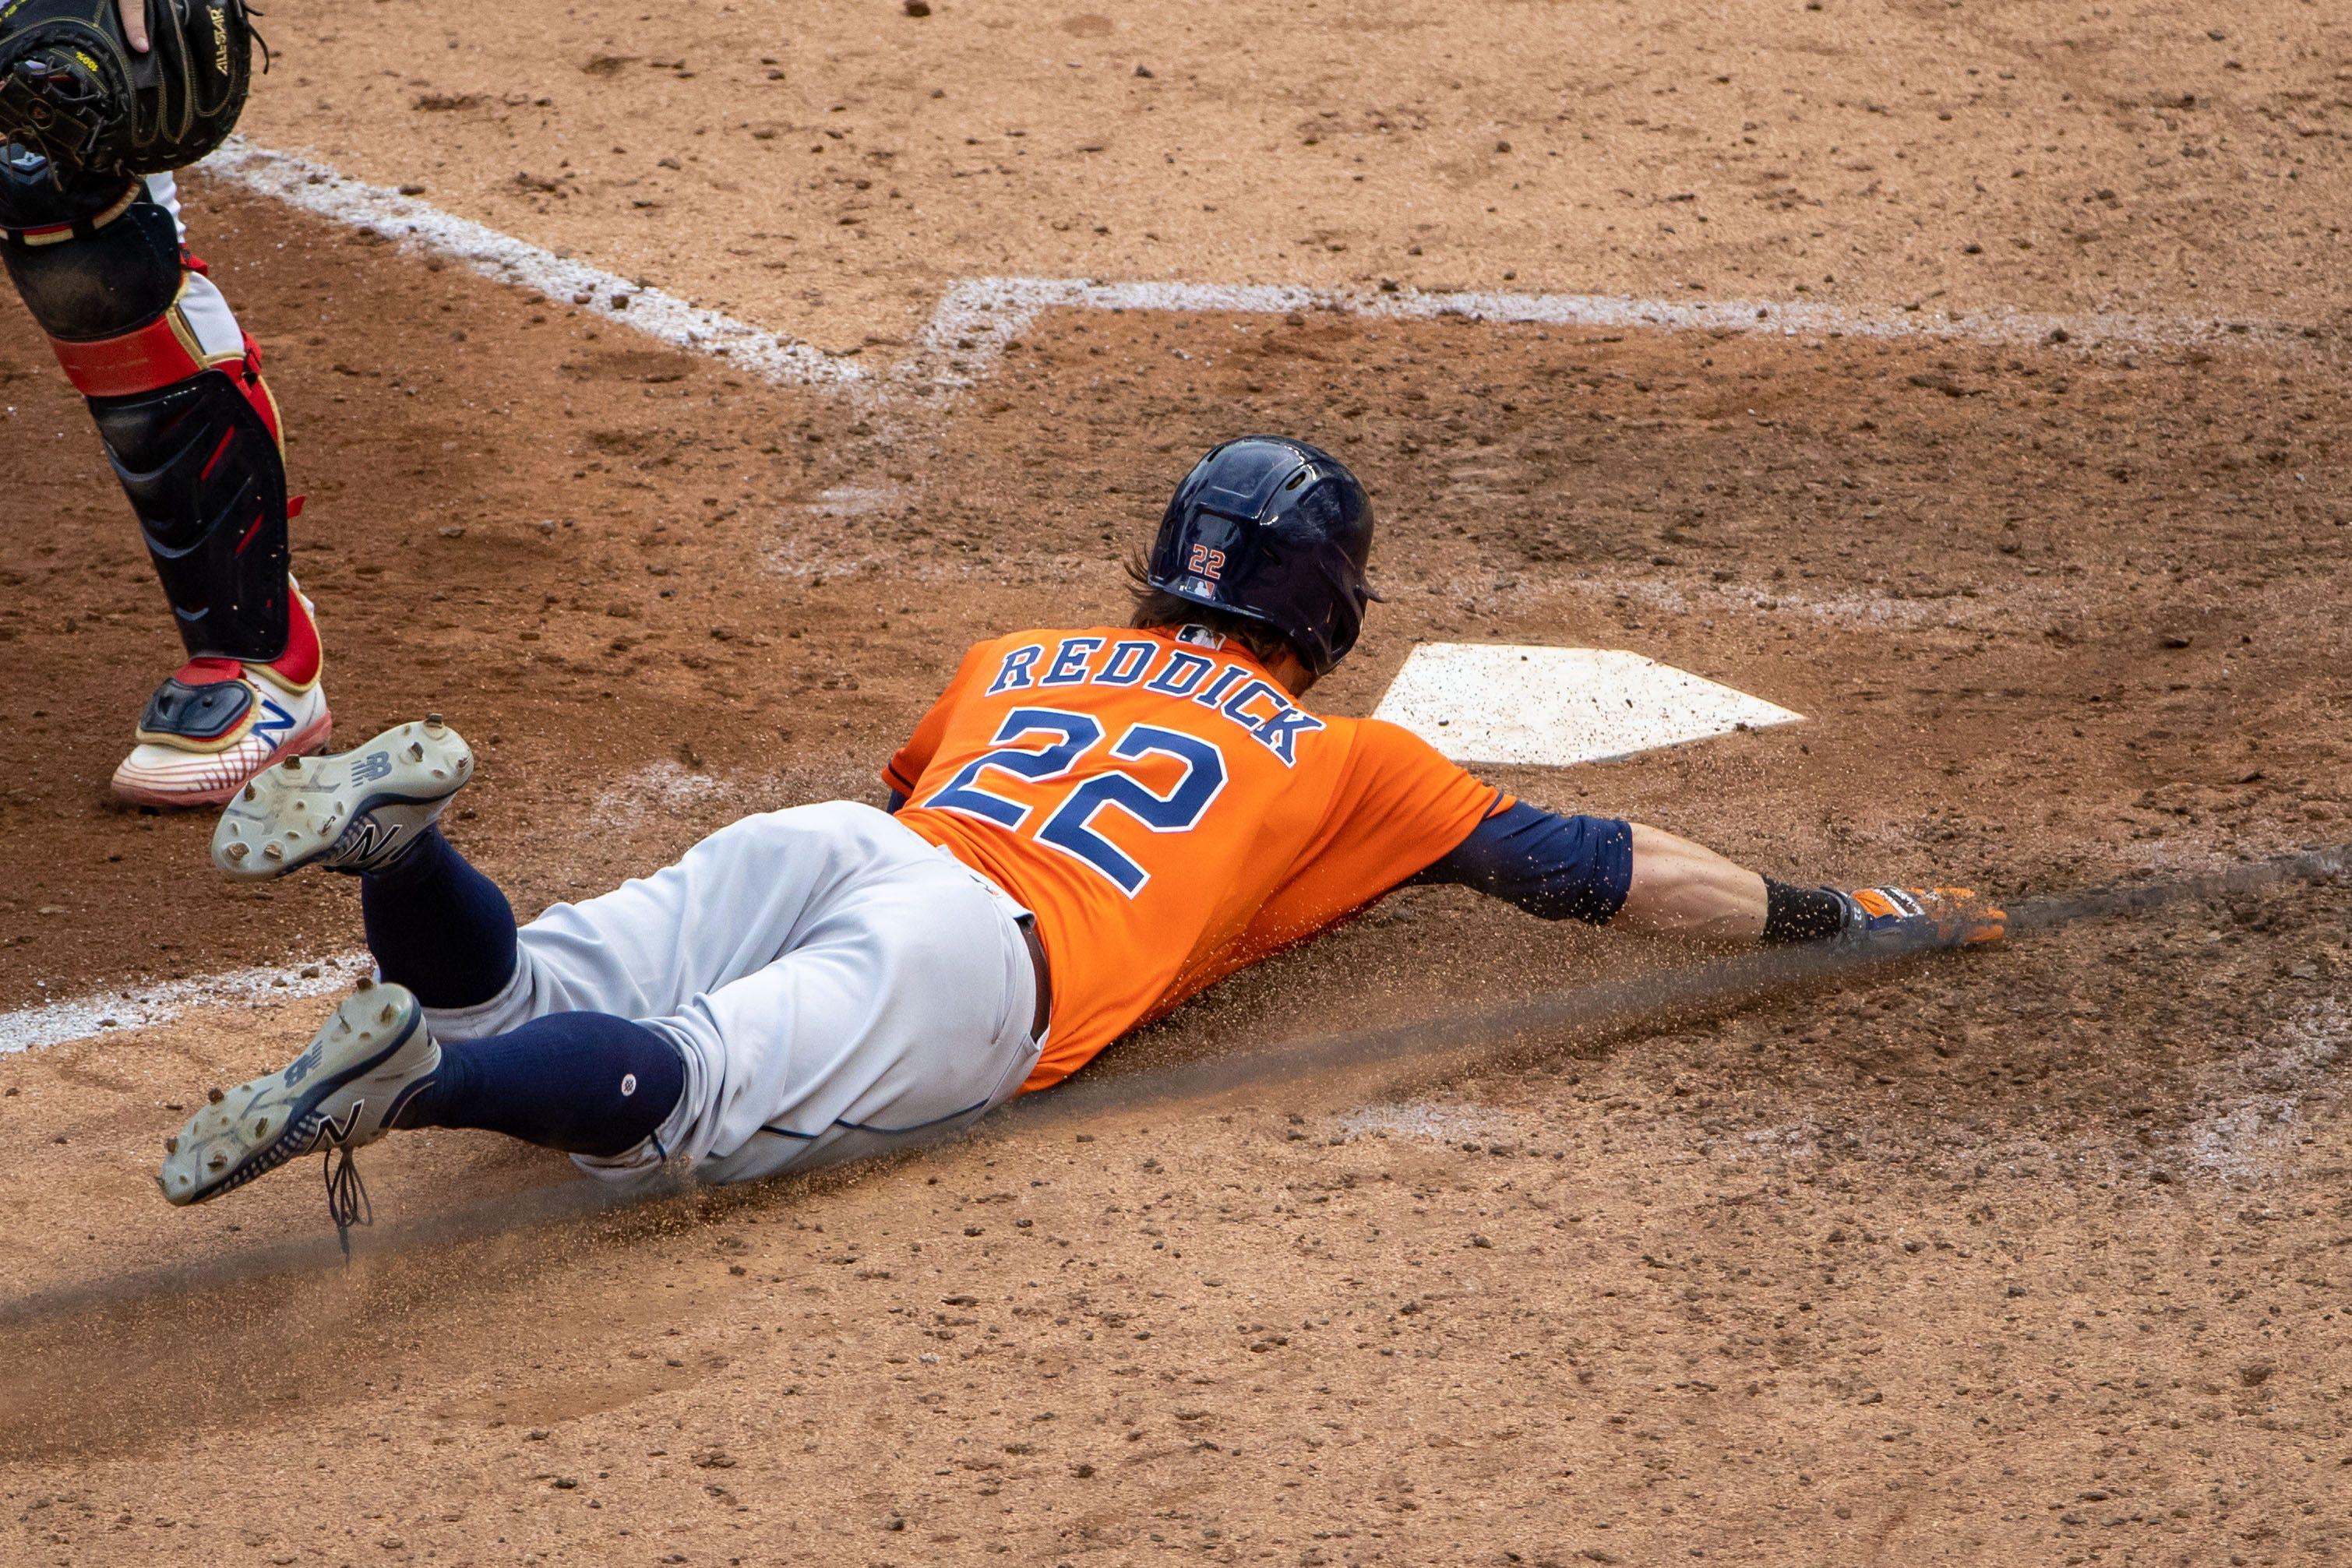 MLB playoffs Day 1 as it happened: Astros hand Twins their 17th consecutive postseason loss